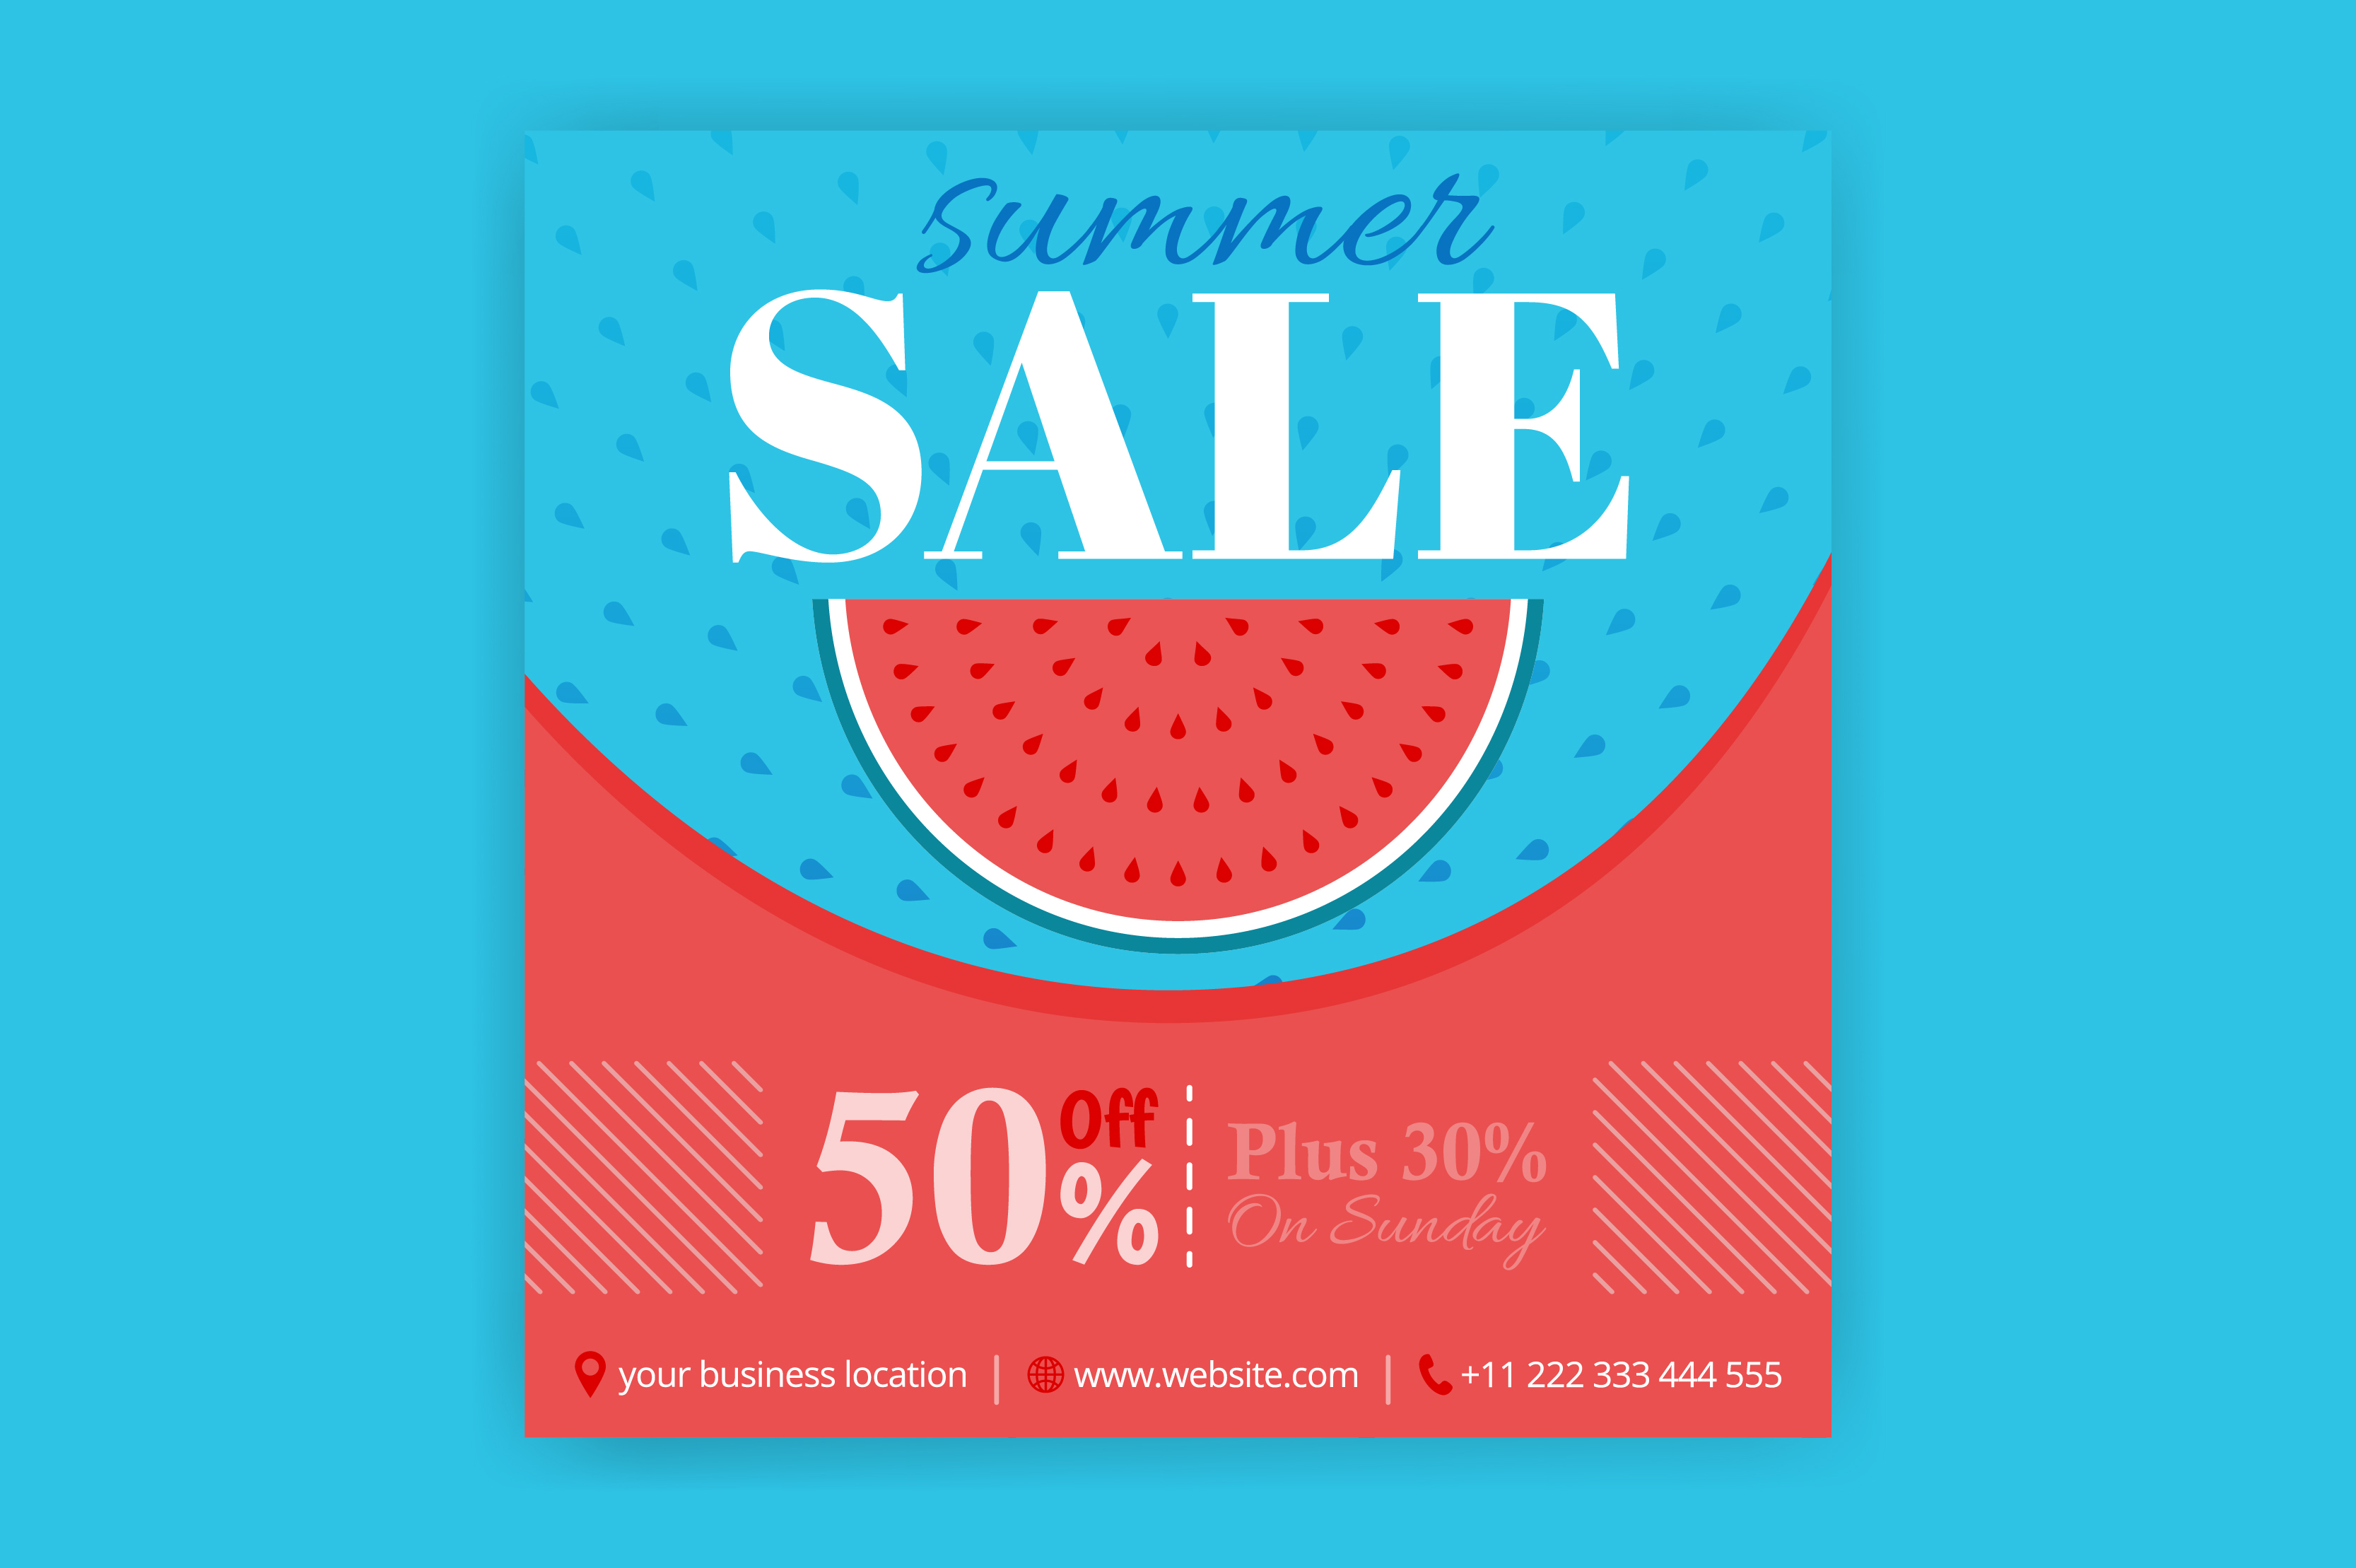 Download Free Summer Sale And 50 Discount Off Posts Graphic By for Cricut Explore, Silhouette and other cutting machines.